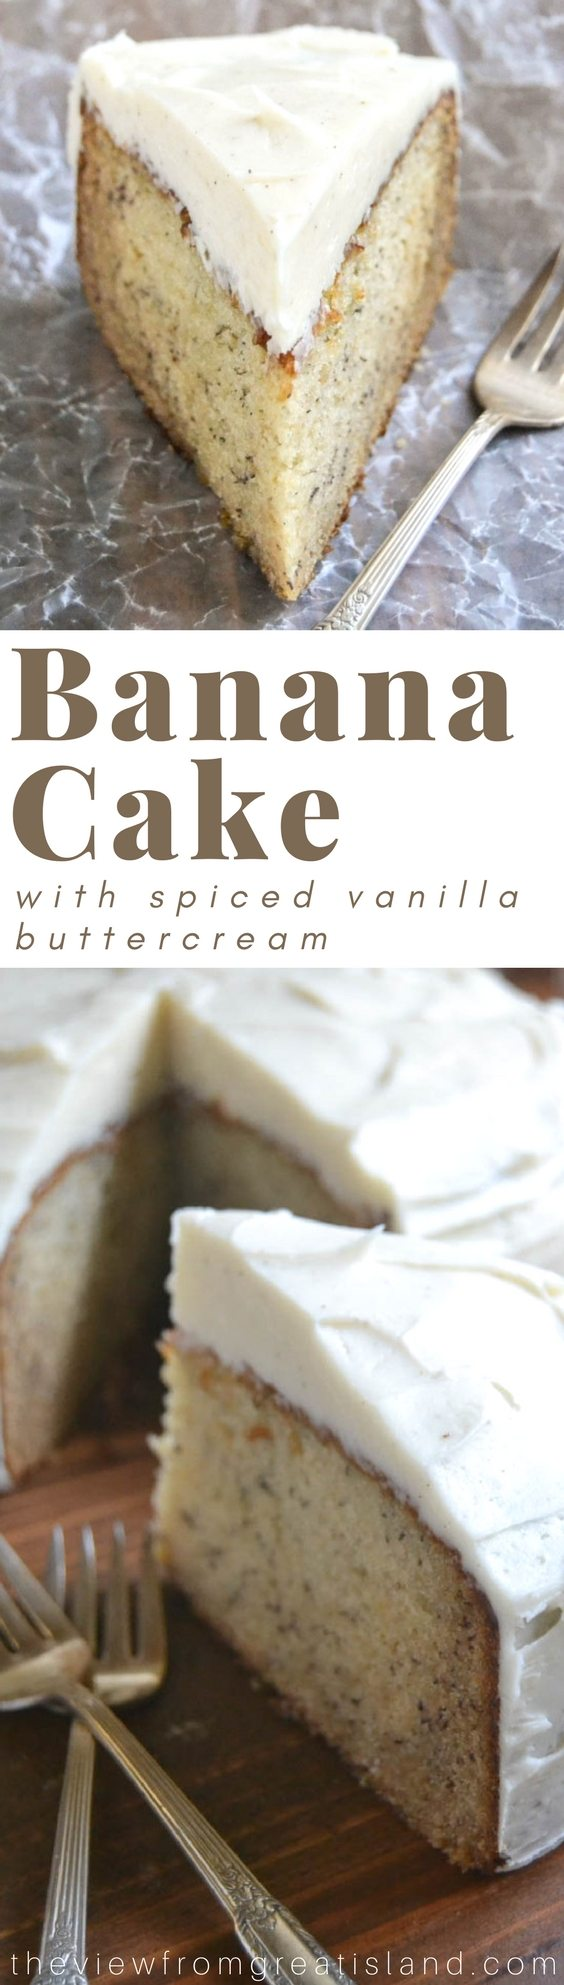 Banana Cake with Spiced Vanilla Buttercream pin